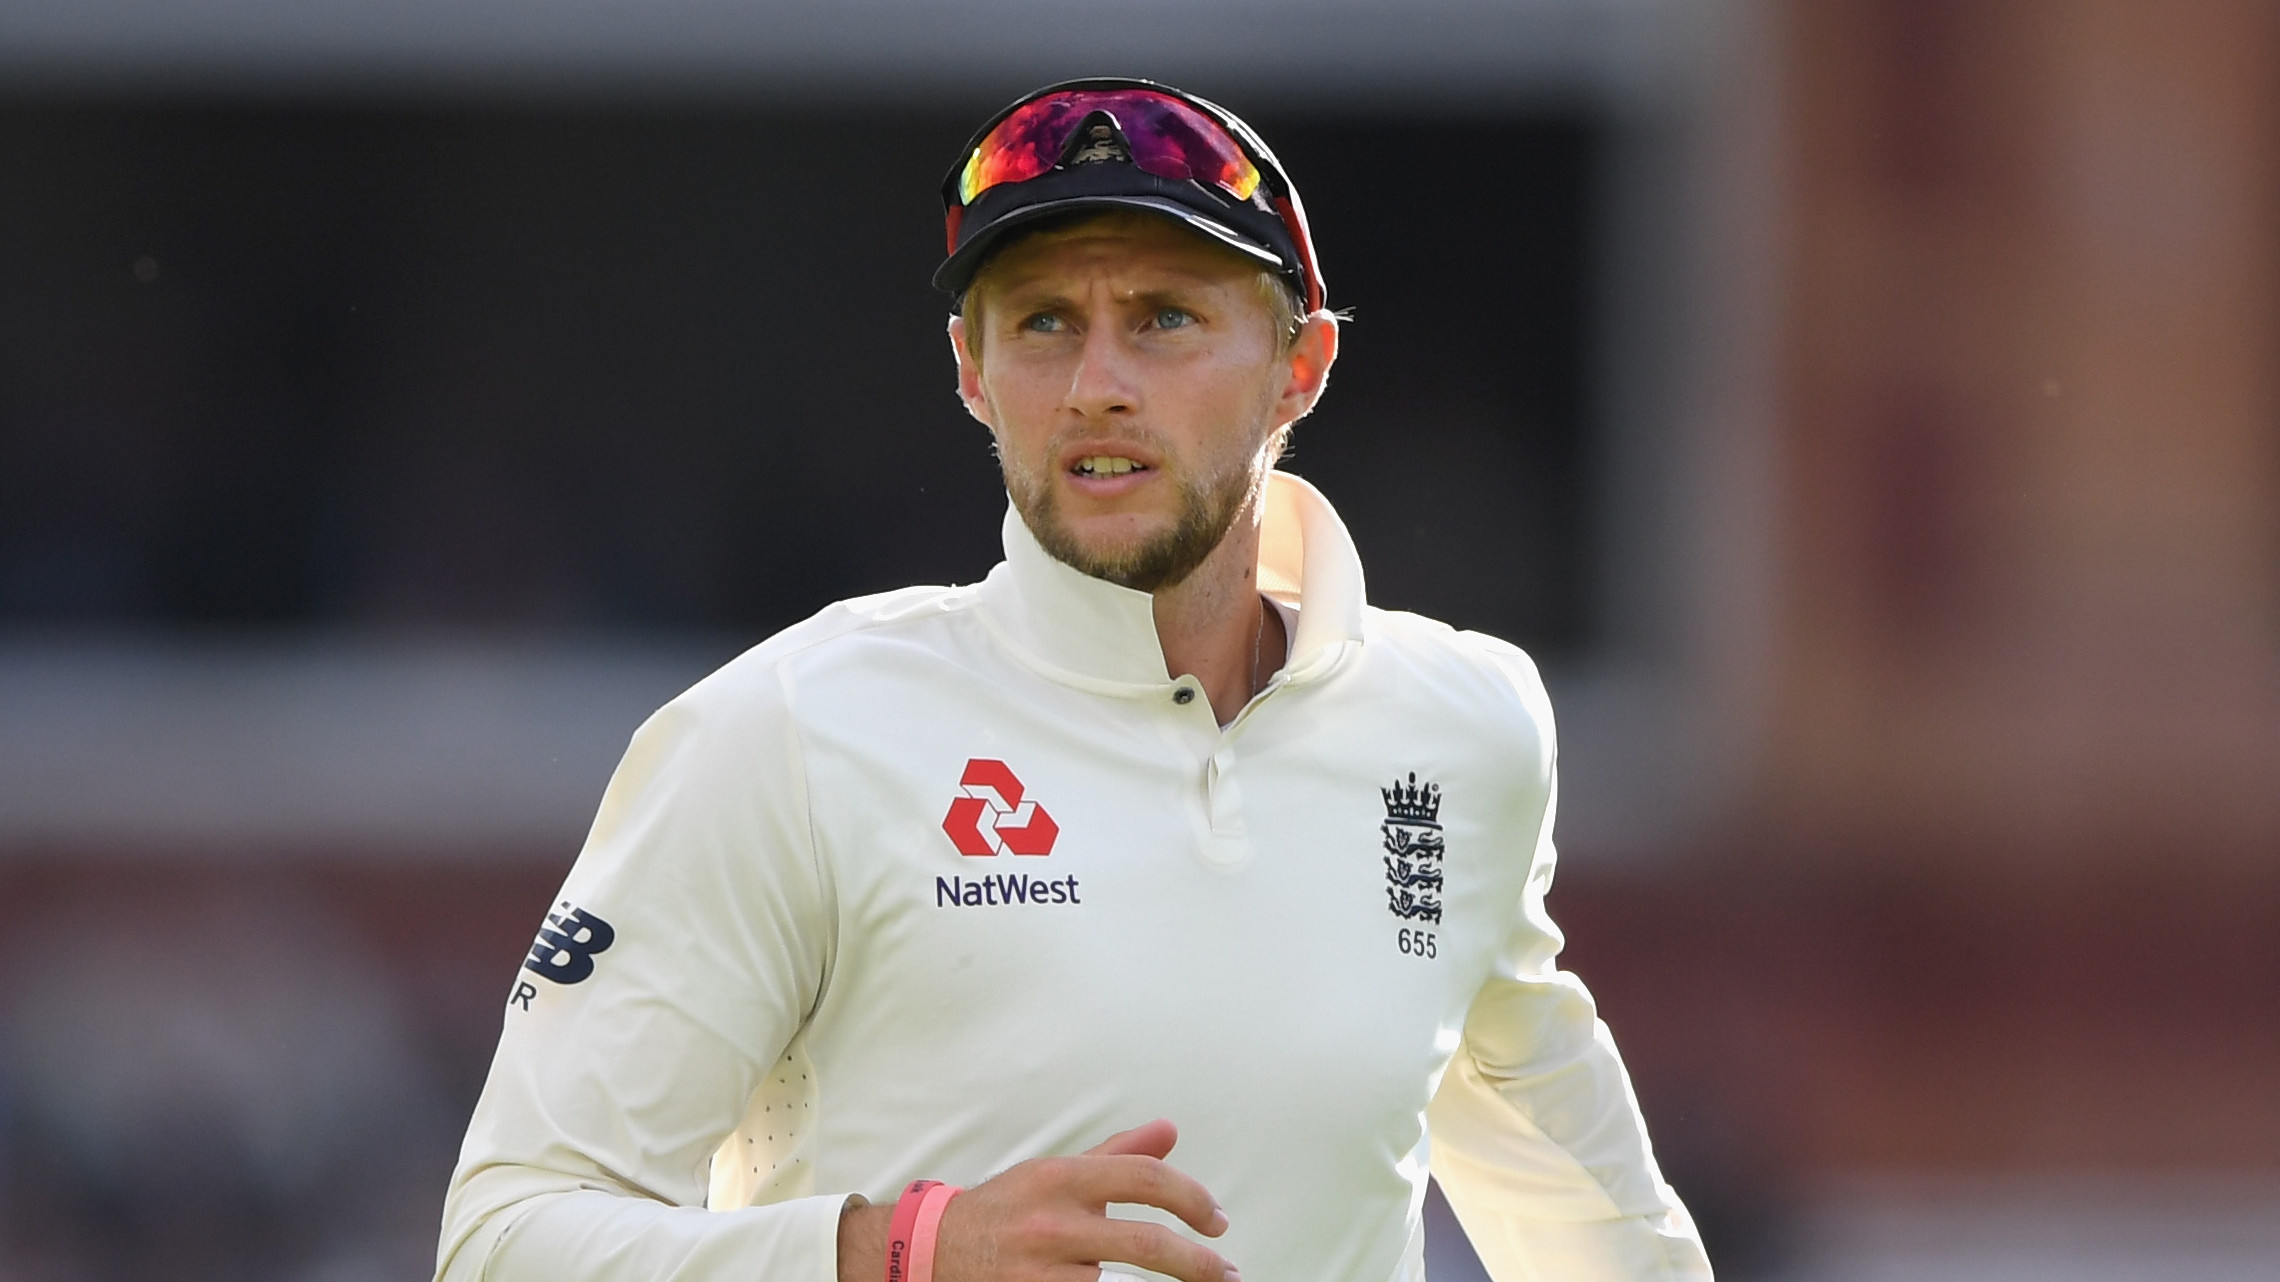 ENG vs IND 2018: We'll have to give credit to India they outplayed us, says Joe Root